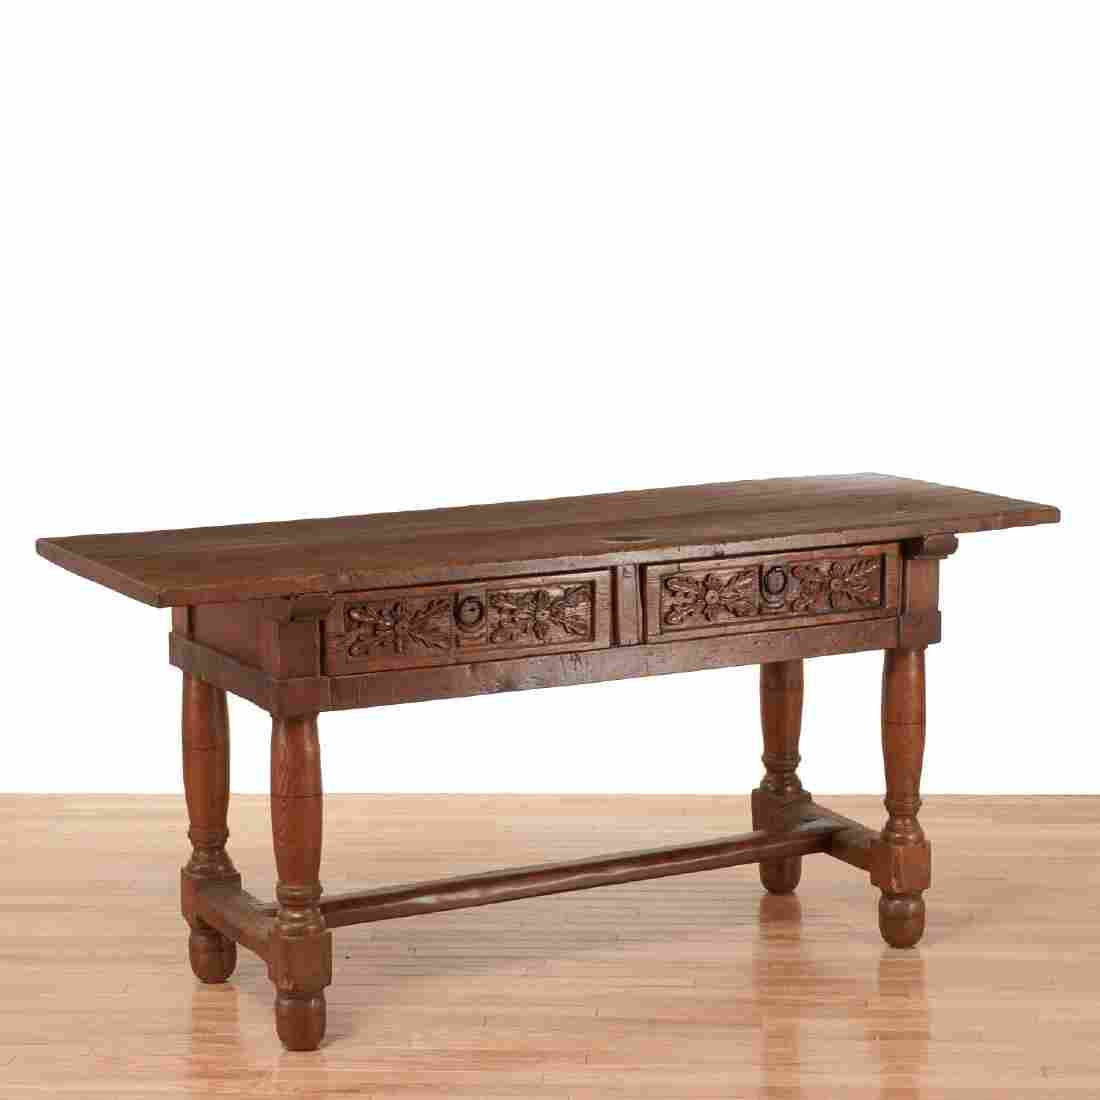 Continental Baroque carved refectory table